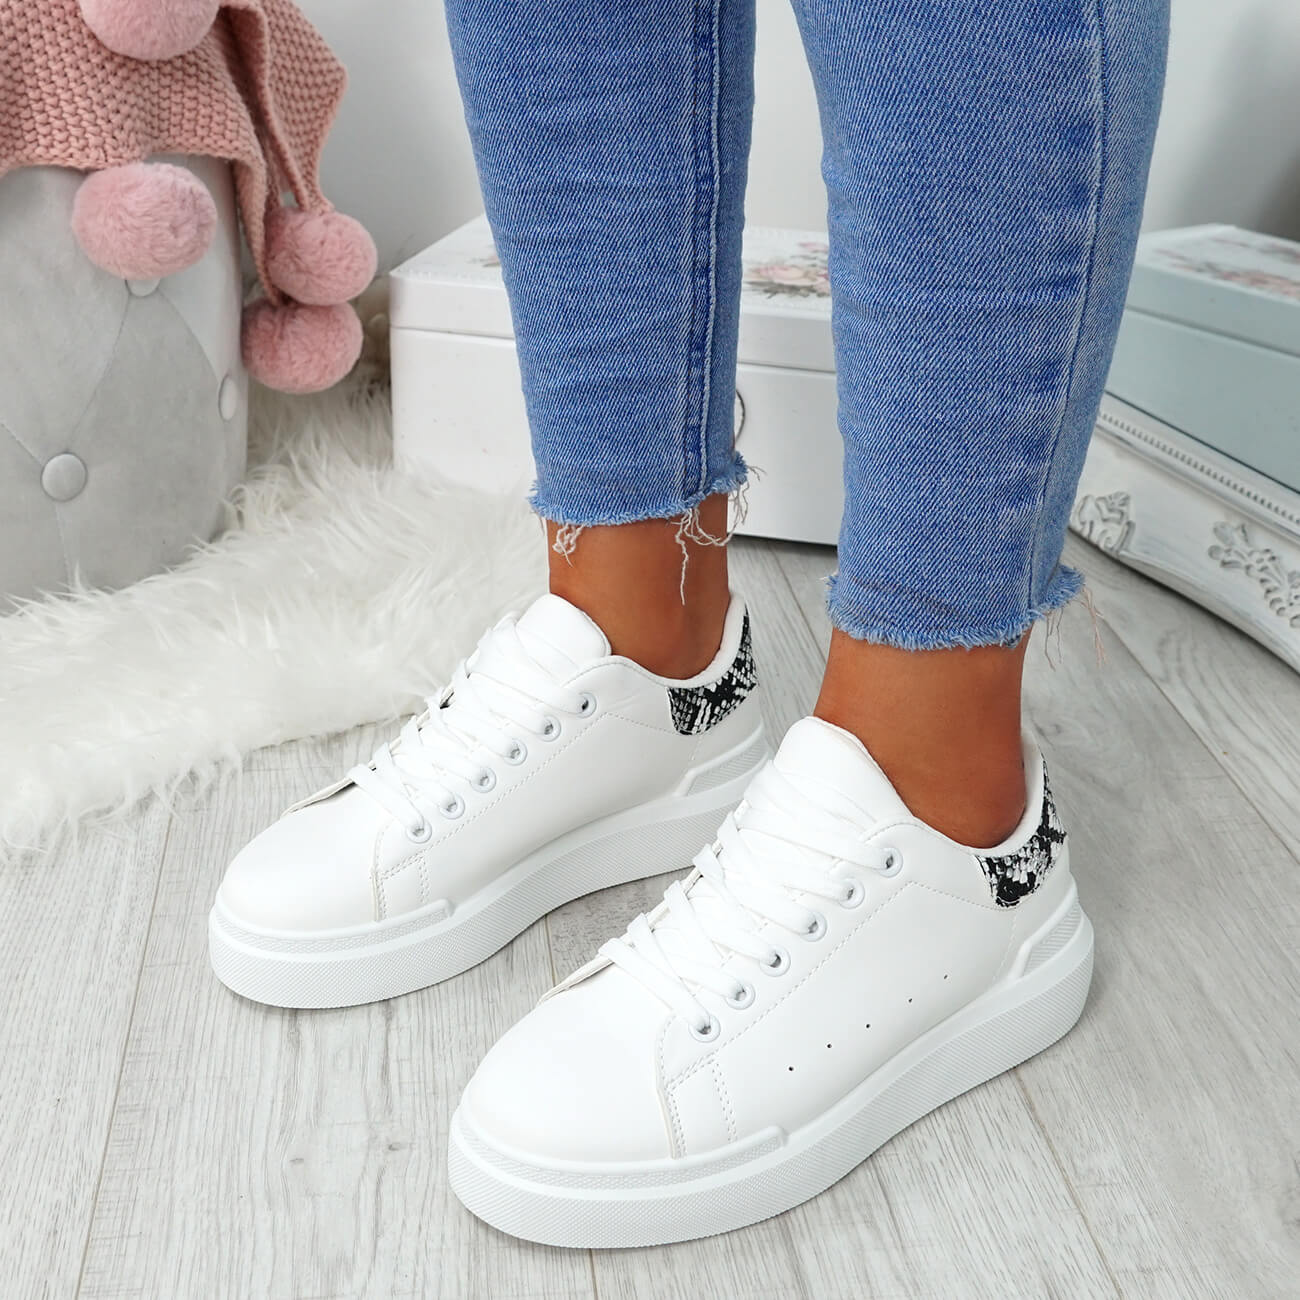 WOMENS-LADIES-LACE-UP-PLIMSOLL-SNEAKERS-CROC-SNAKE-TRAINERS-CASUAL-SHOES-SIZE thumbnail 30